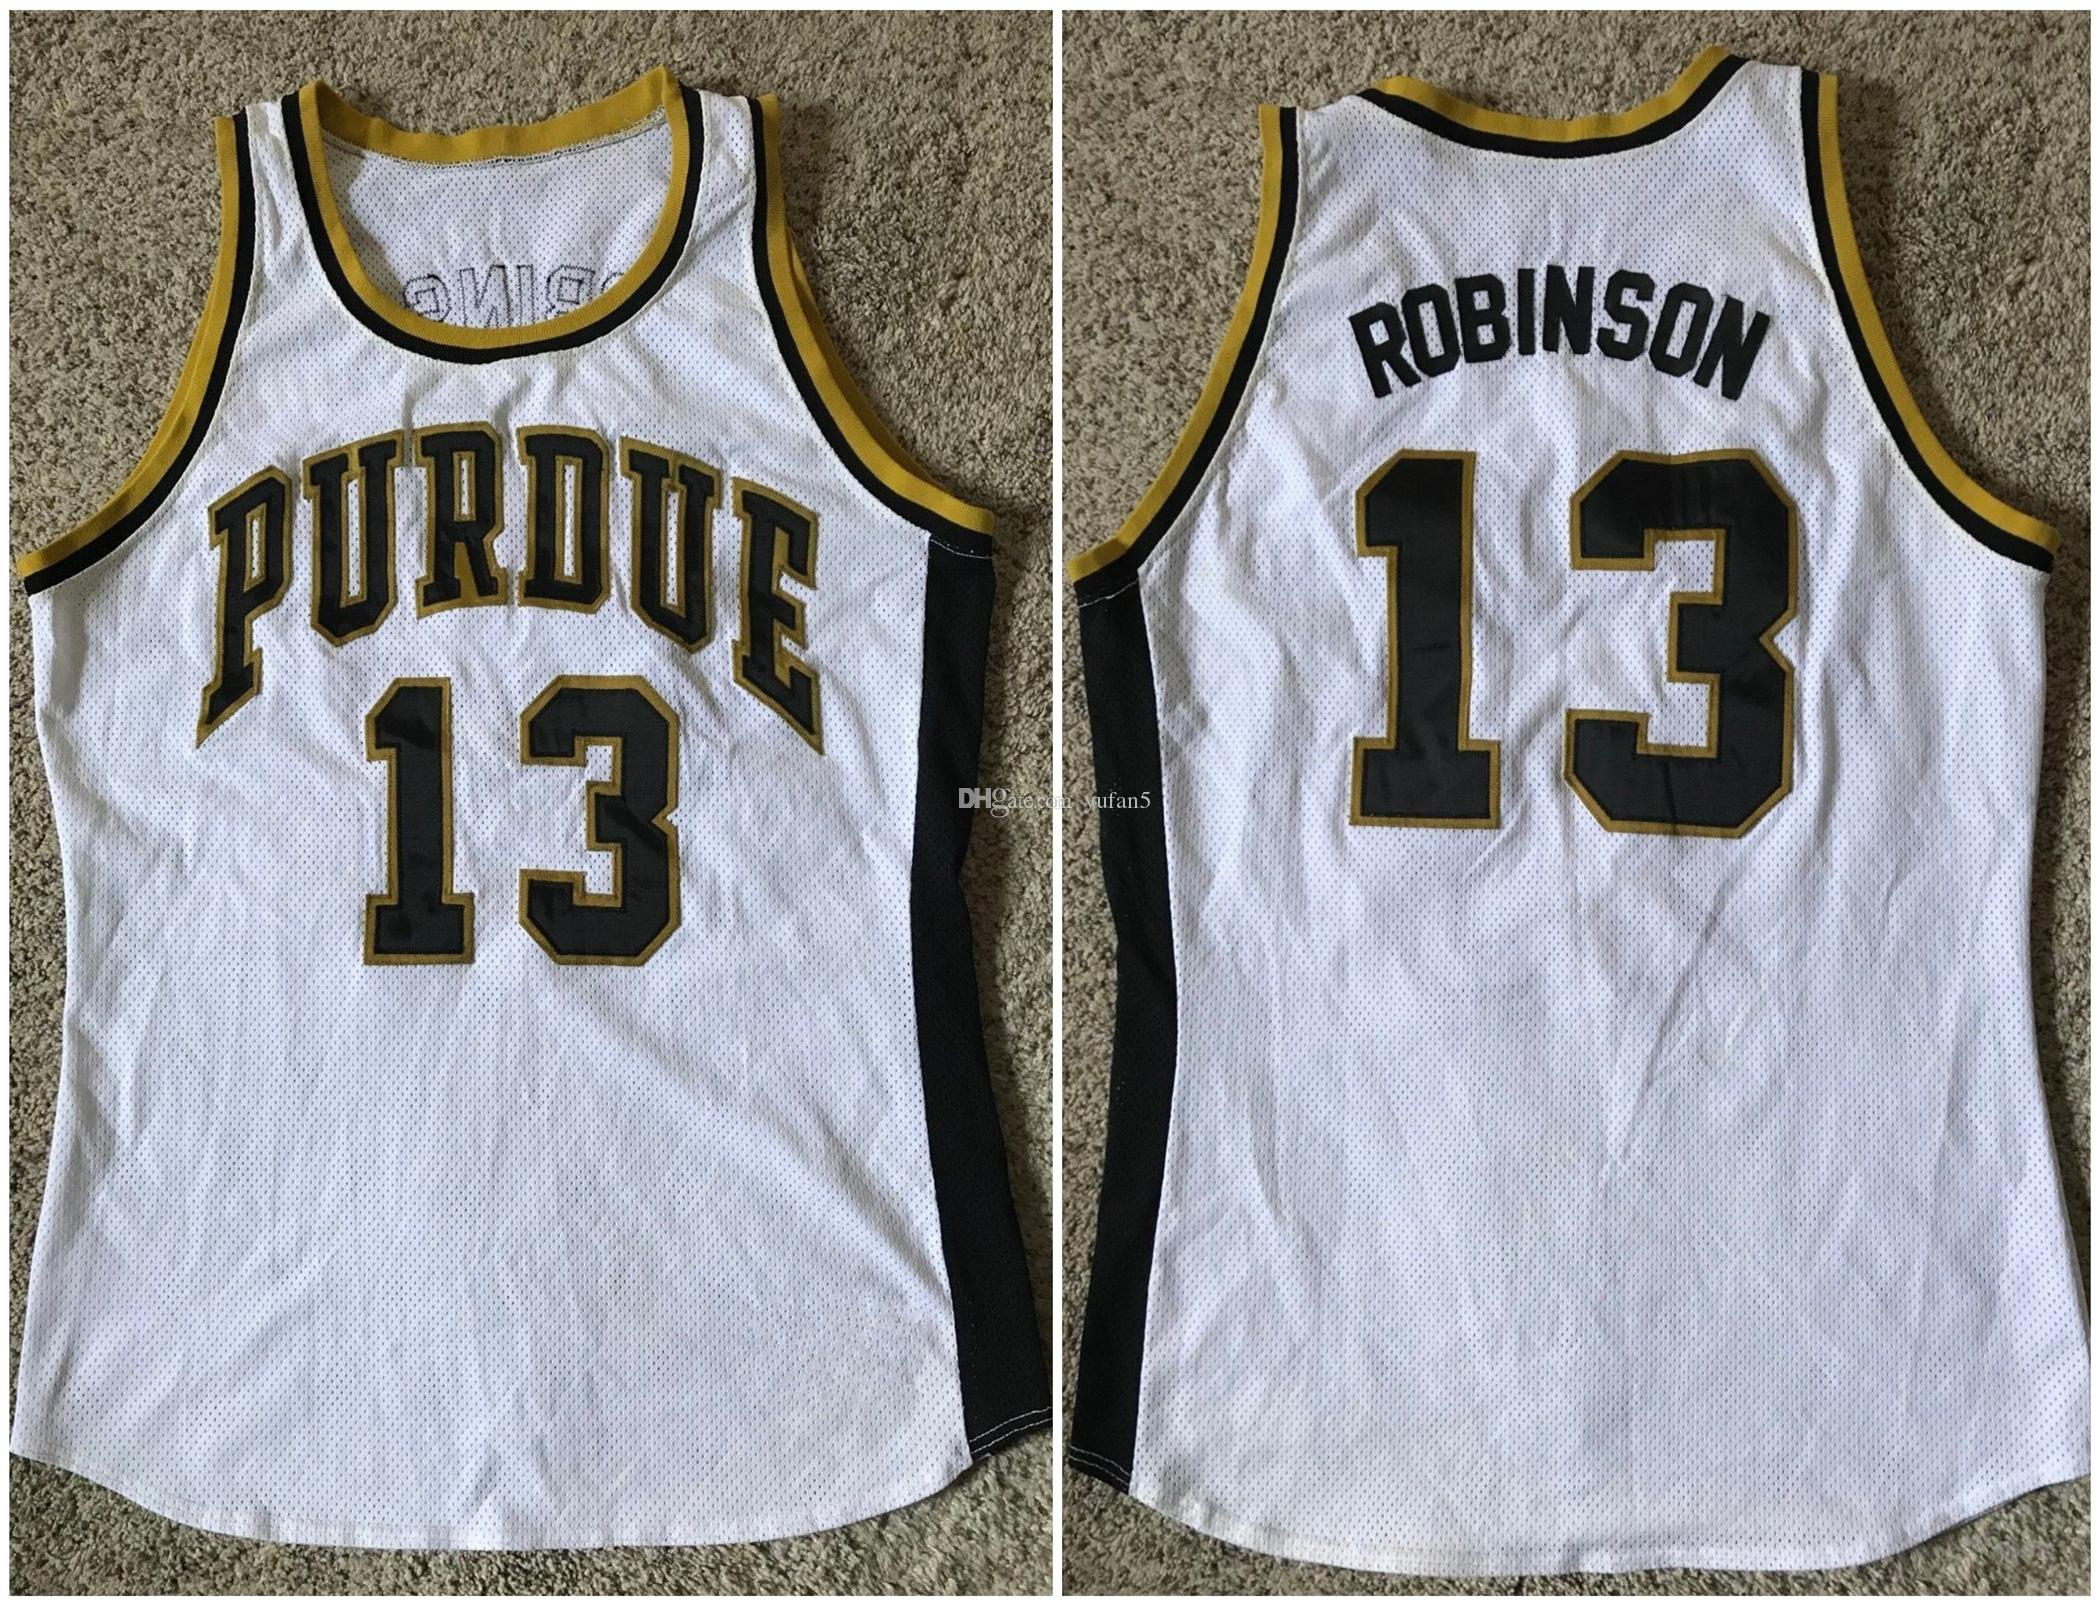 promo code 44d8c 6347e #13 Glenn Robinson Purdue Boilermakers College Retro Basketball Jersey Mens  Stitched Custom Number Name Jerseys